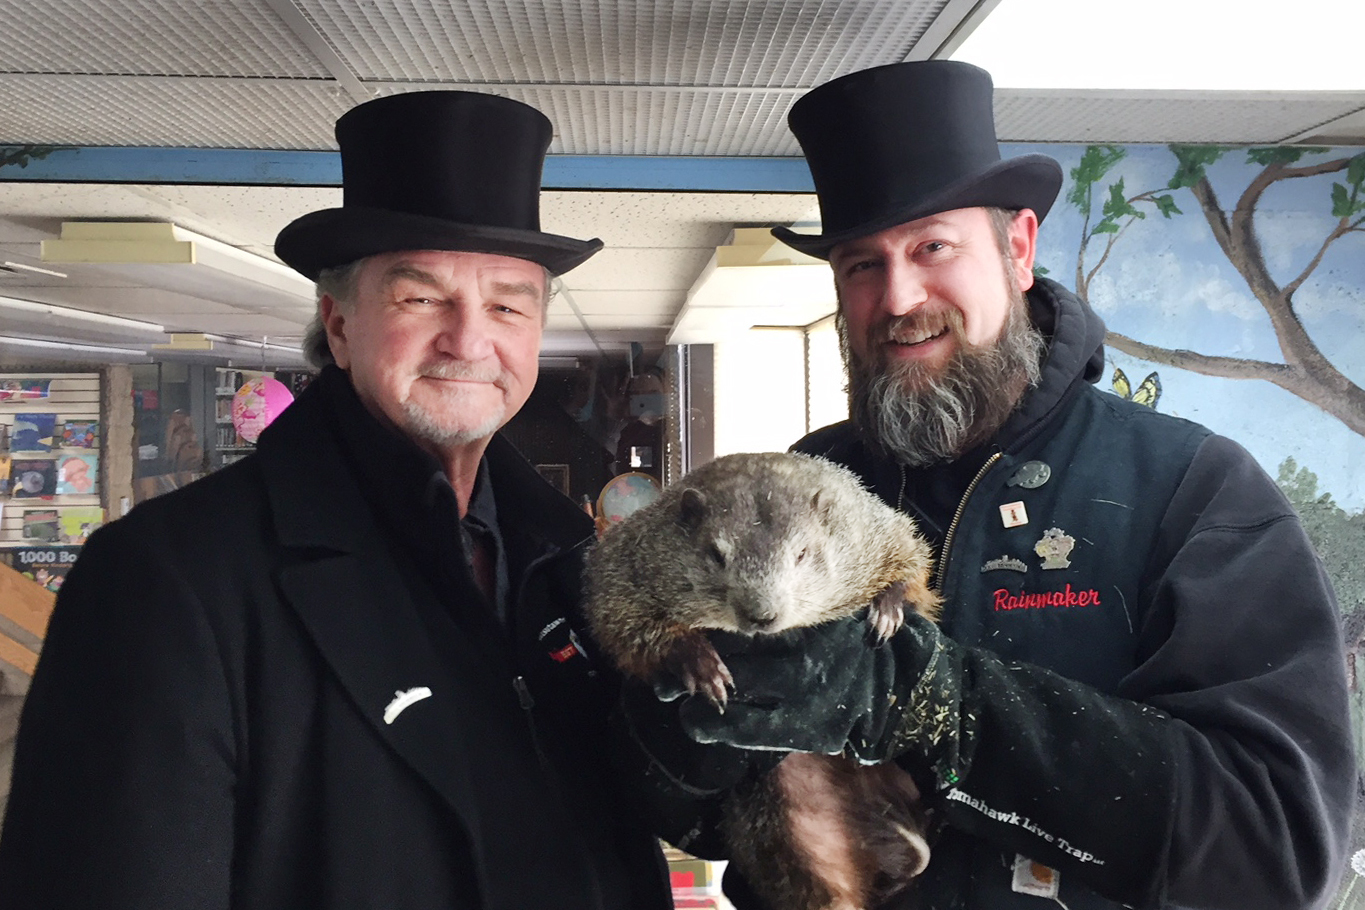 Punxsutawney Phil Predicts An Extended Winter